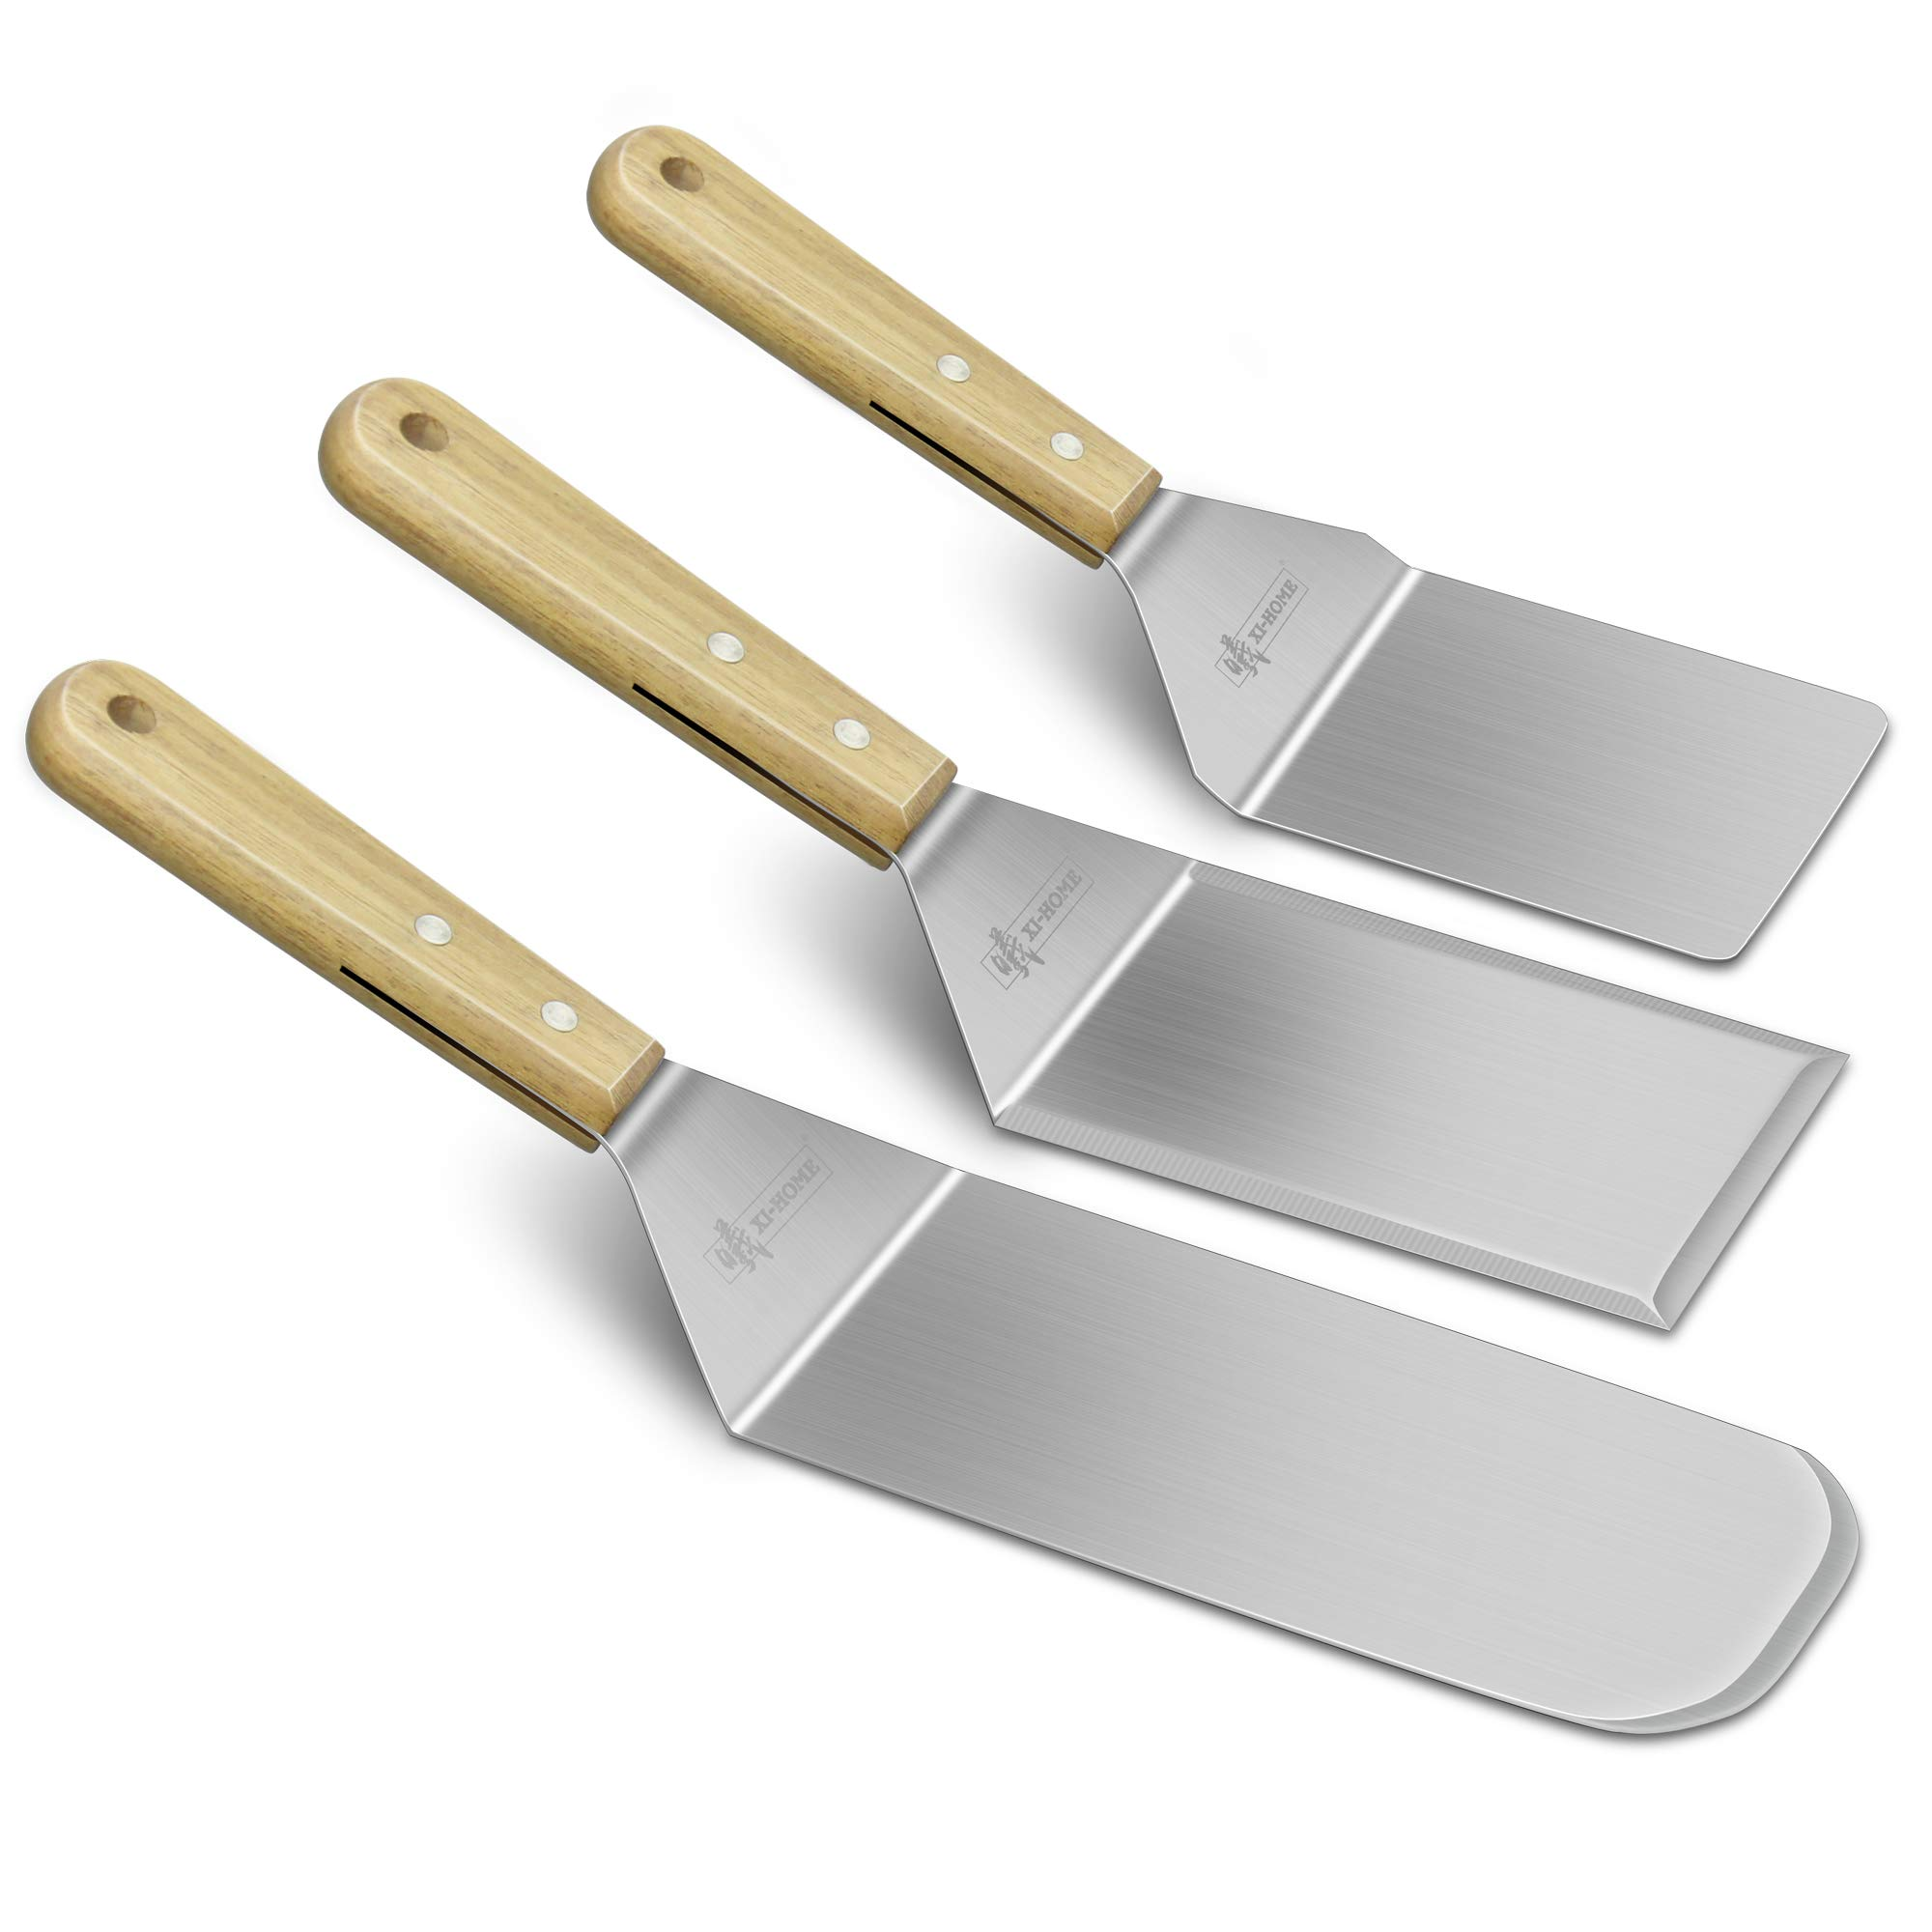 Professional BBQ Grill Stainless Steel Spatulas, Acacia Wood Handle Kitchen Cooking Baking Scraper Turner, Set of 3